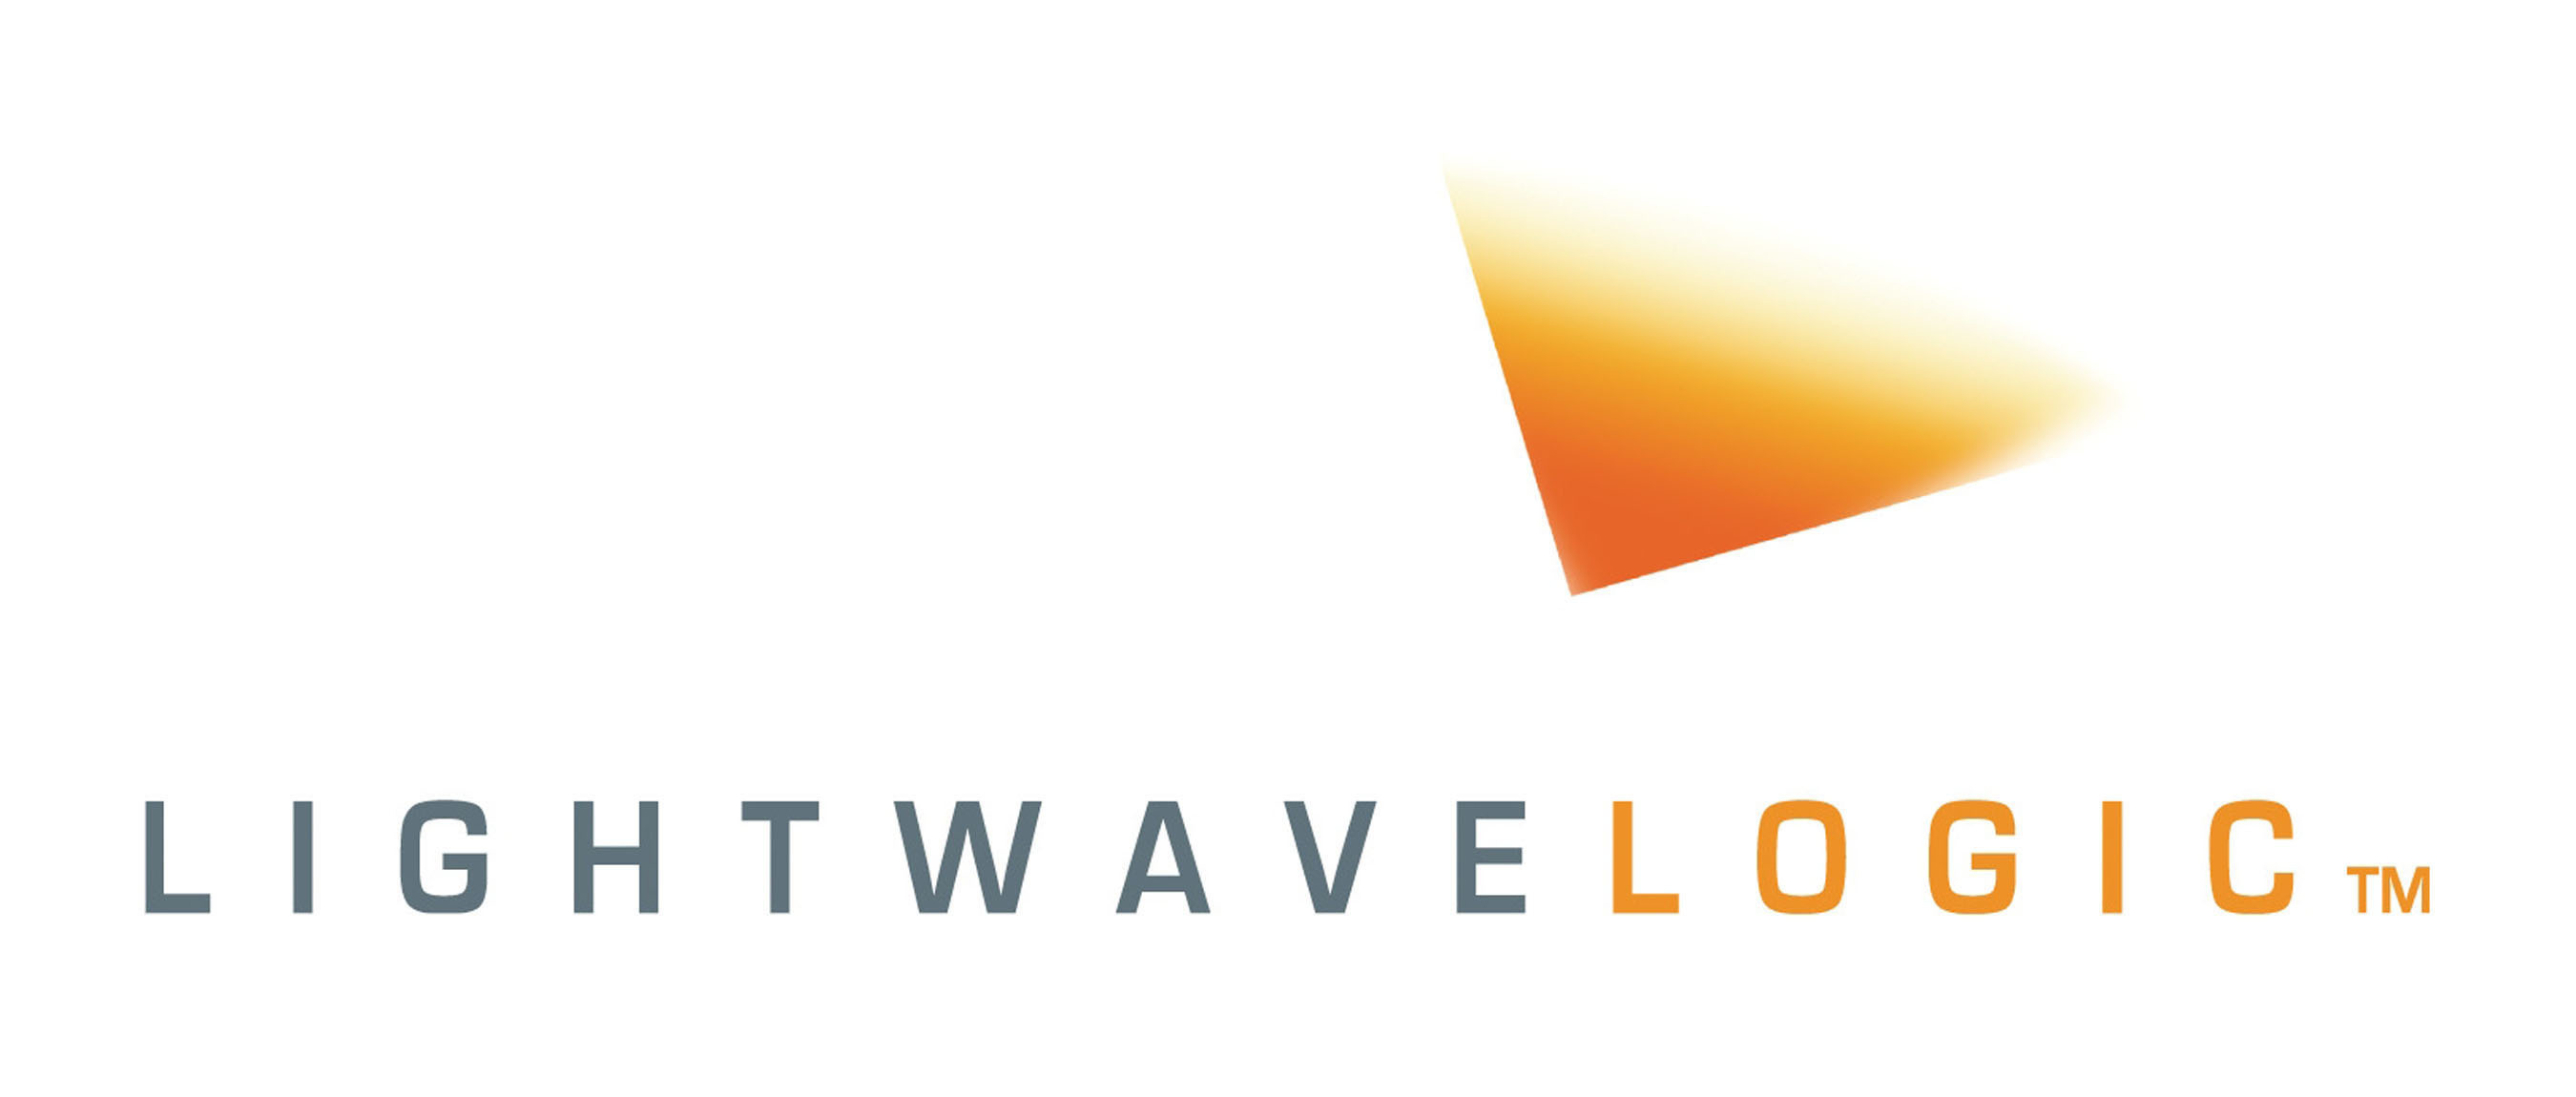 Lightwave Logic Logo